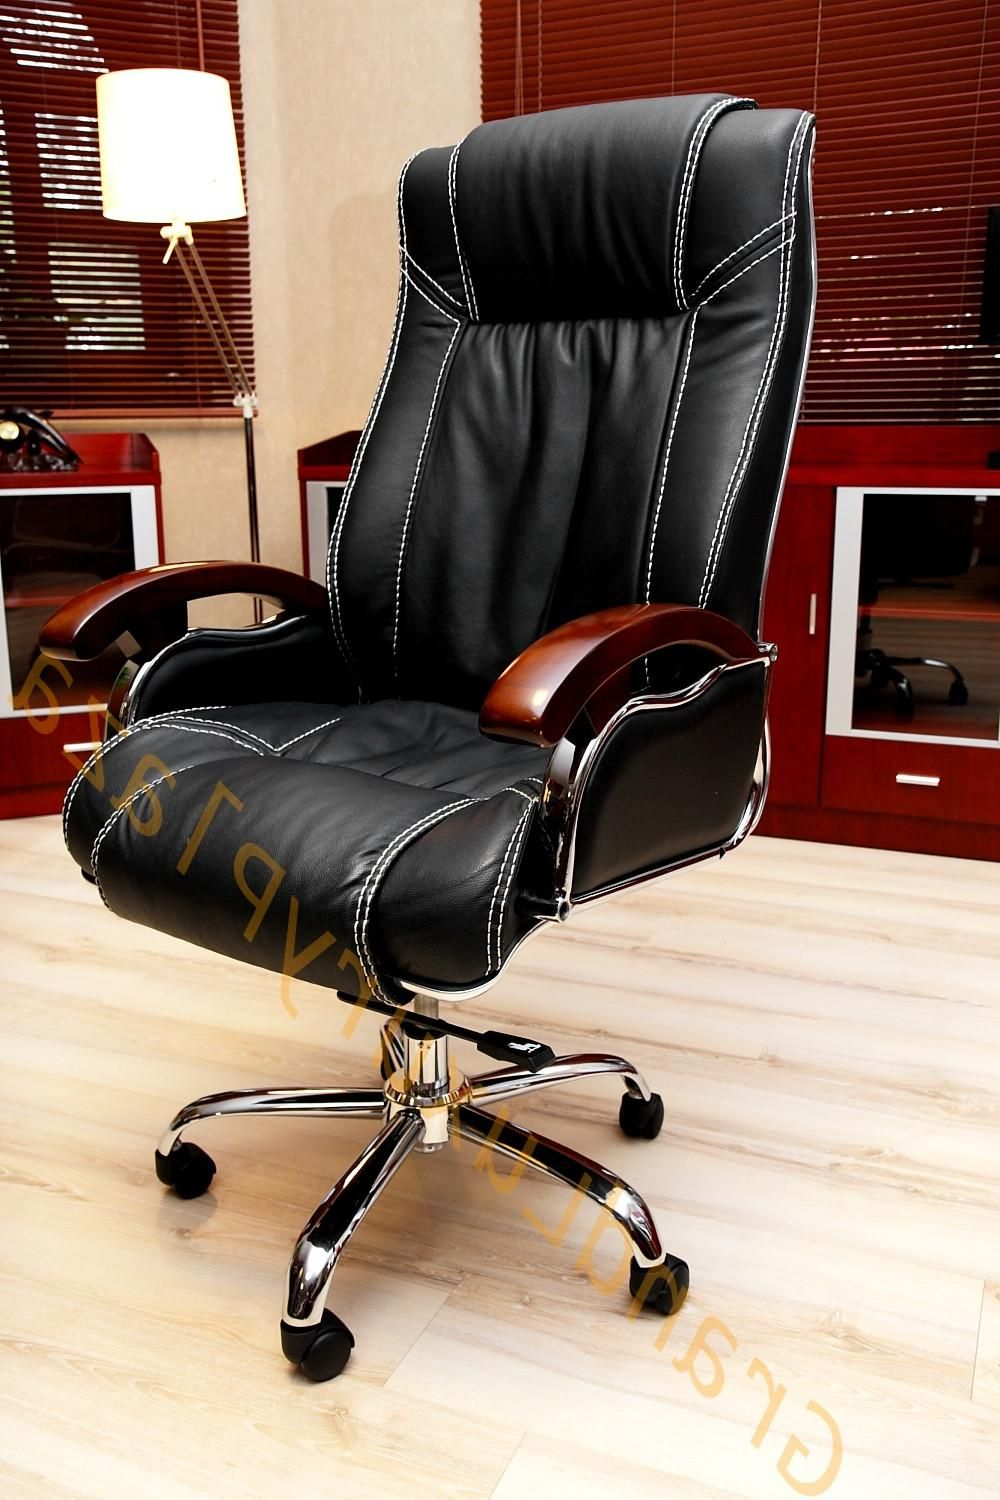 Modern Office Chairs Decor For Cozy Working E As Well Brown Furniture Set In The Nearby